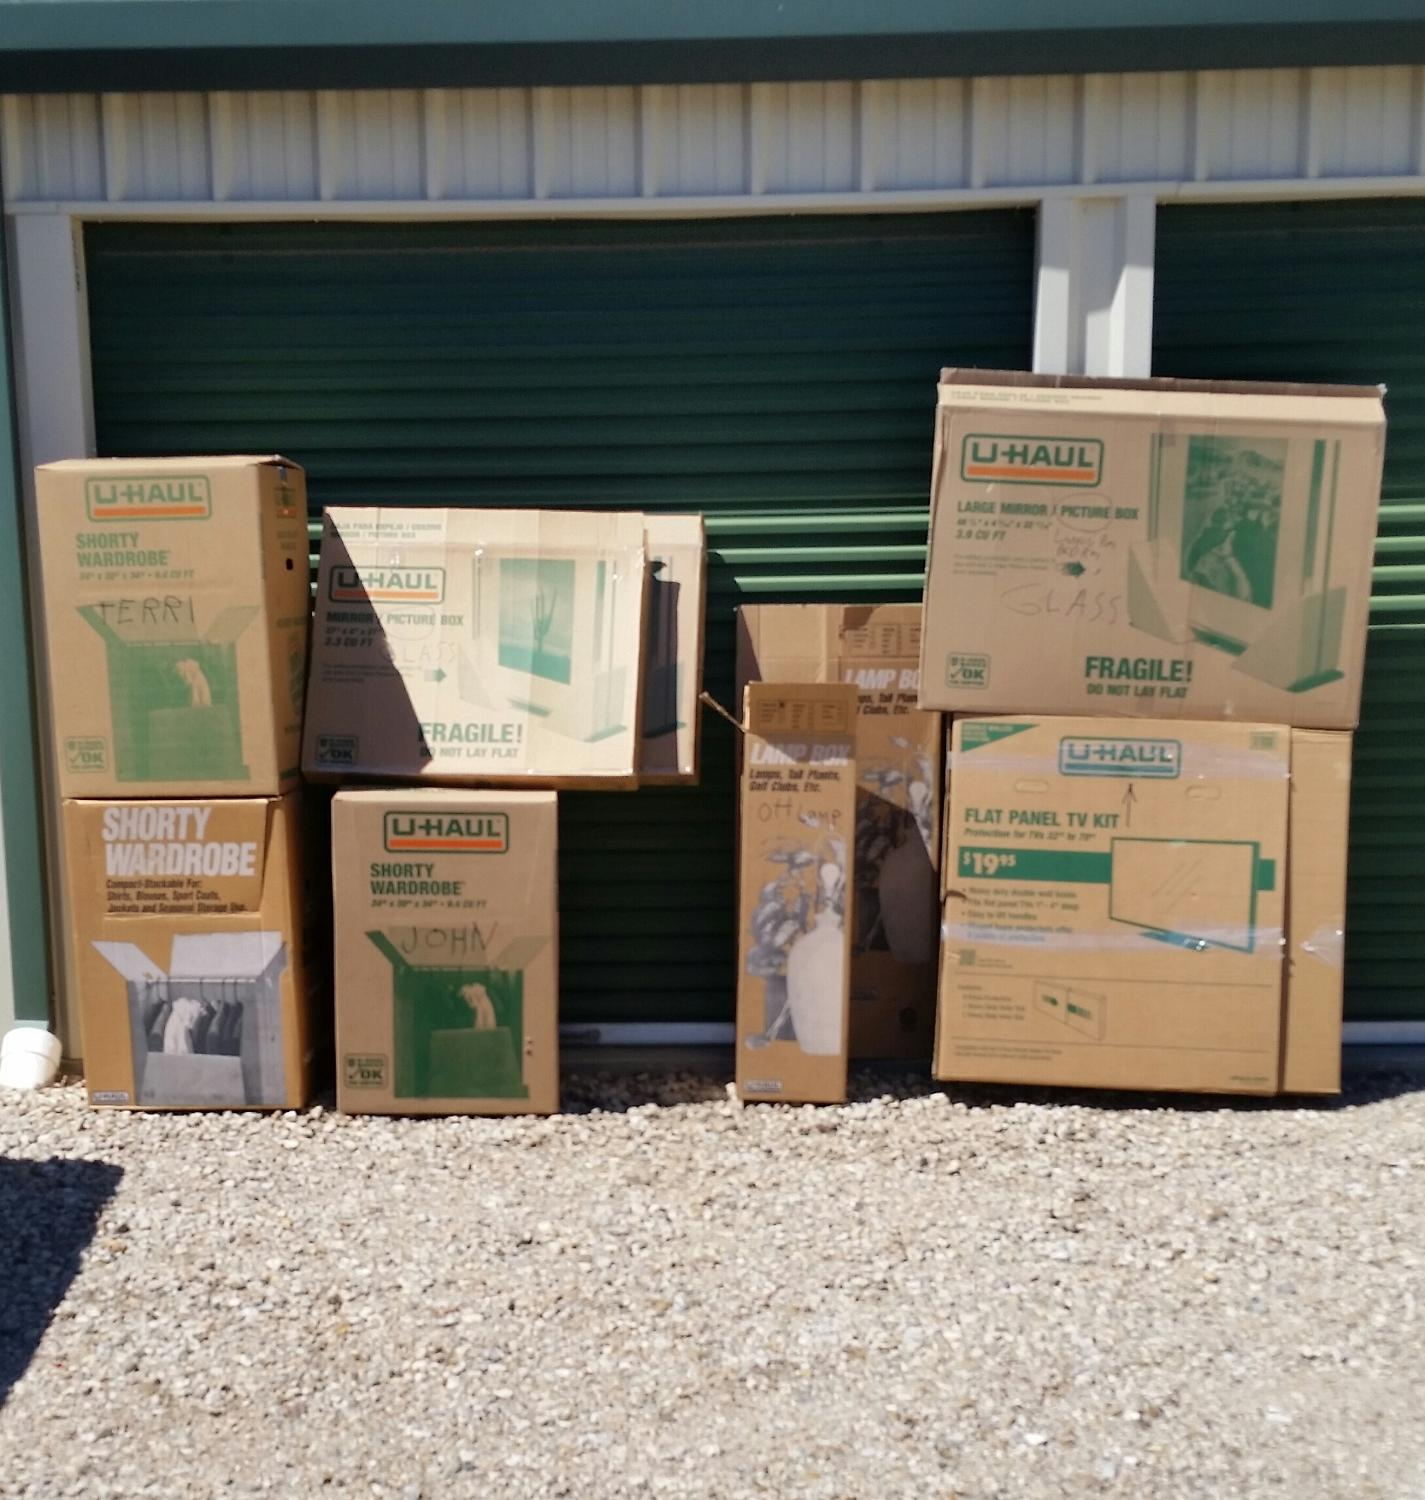 Wardrobe Boxes Uhaul: Find More Specialty Moving Boxes For Sale At Up To 90% Off